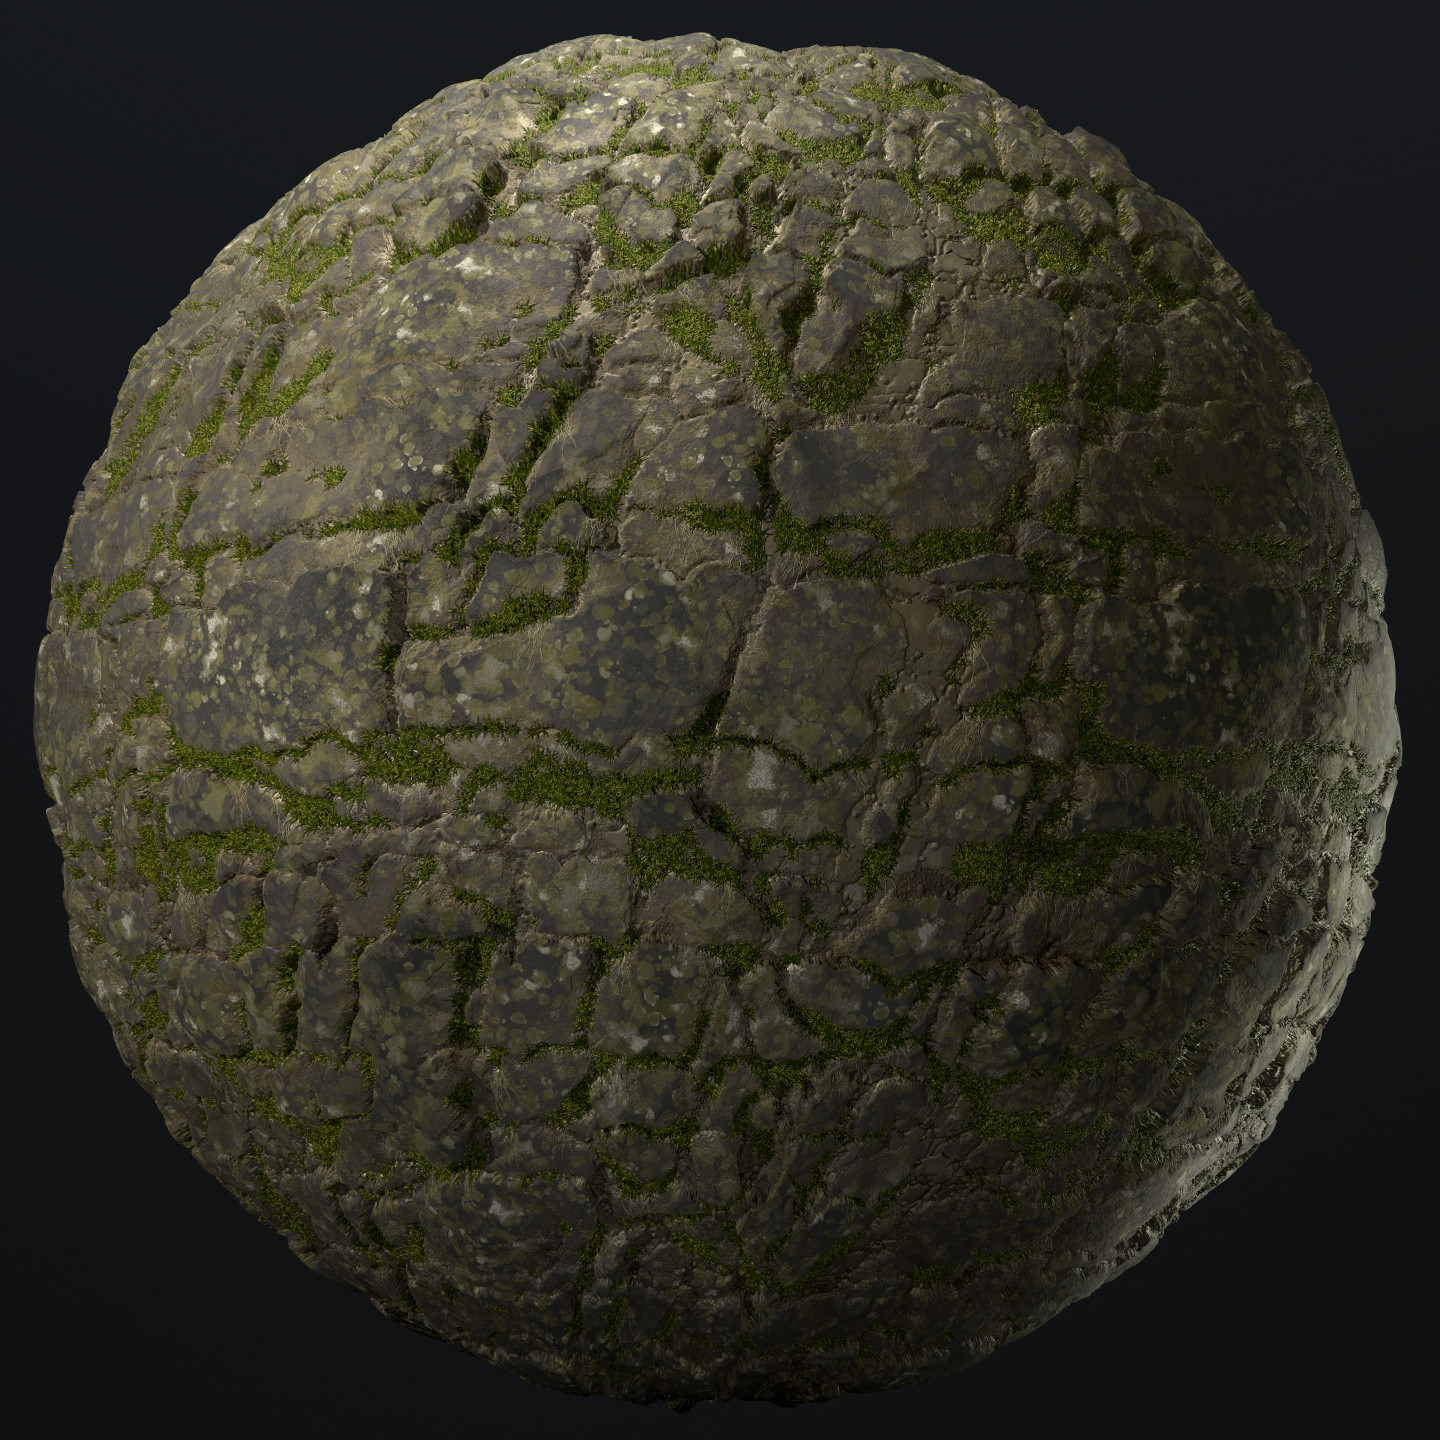 Stone and Grass